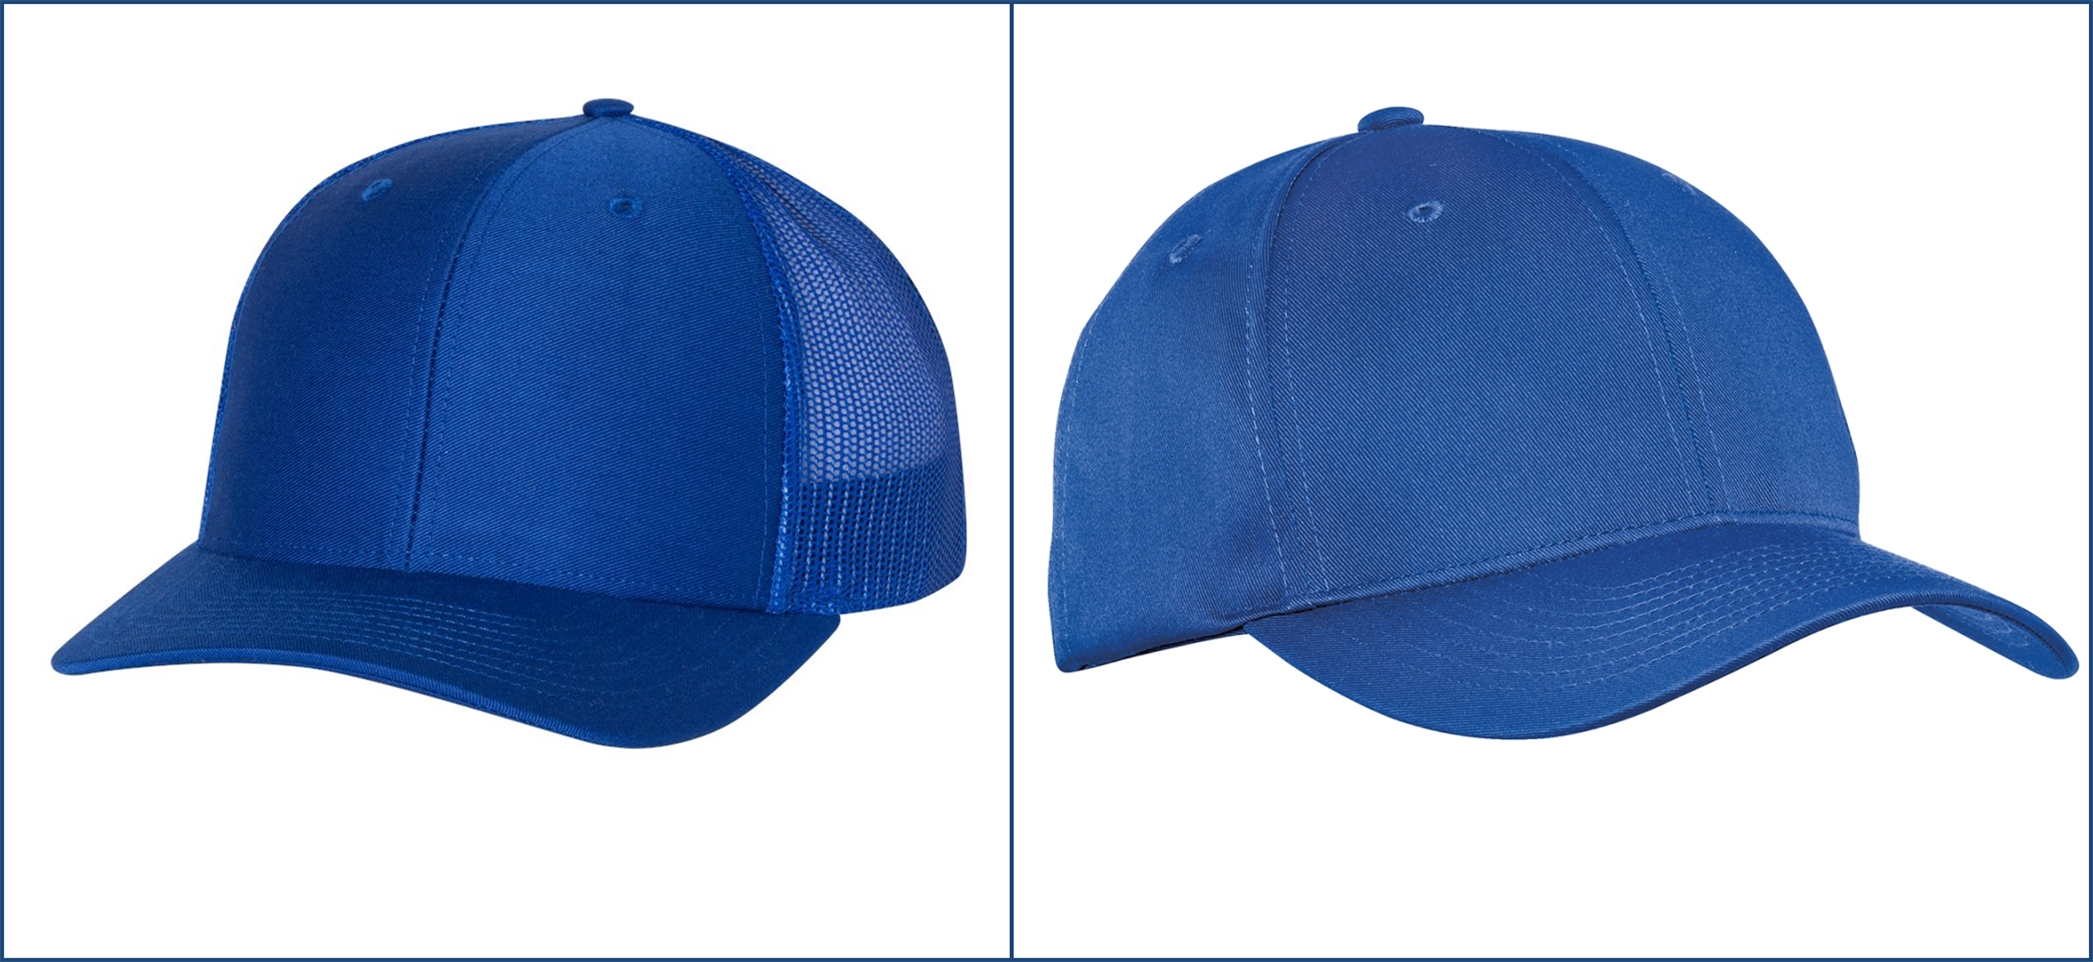 Classic Blue Hats from NYFifth